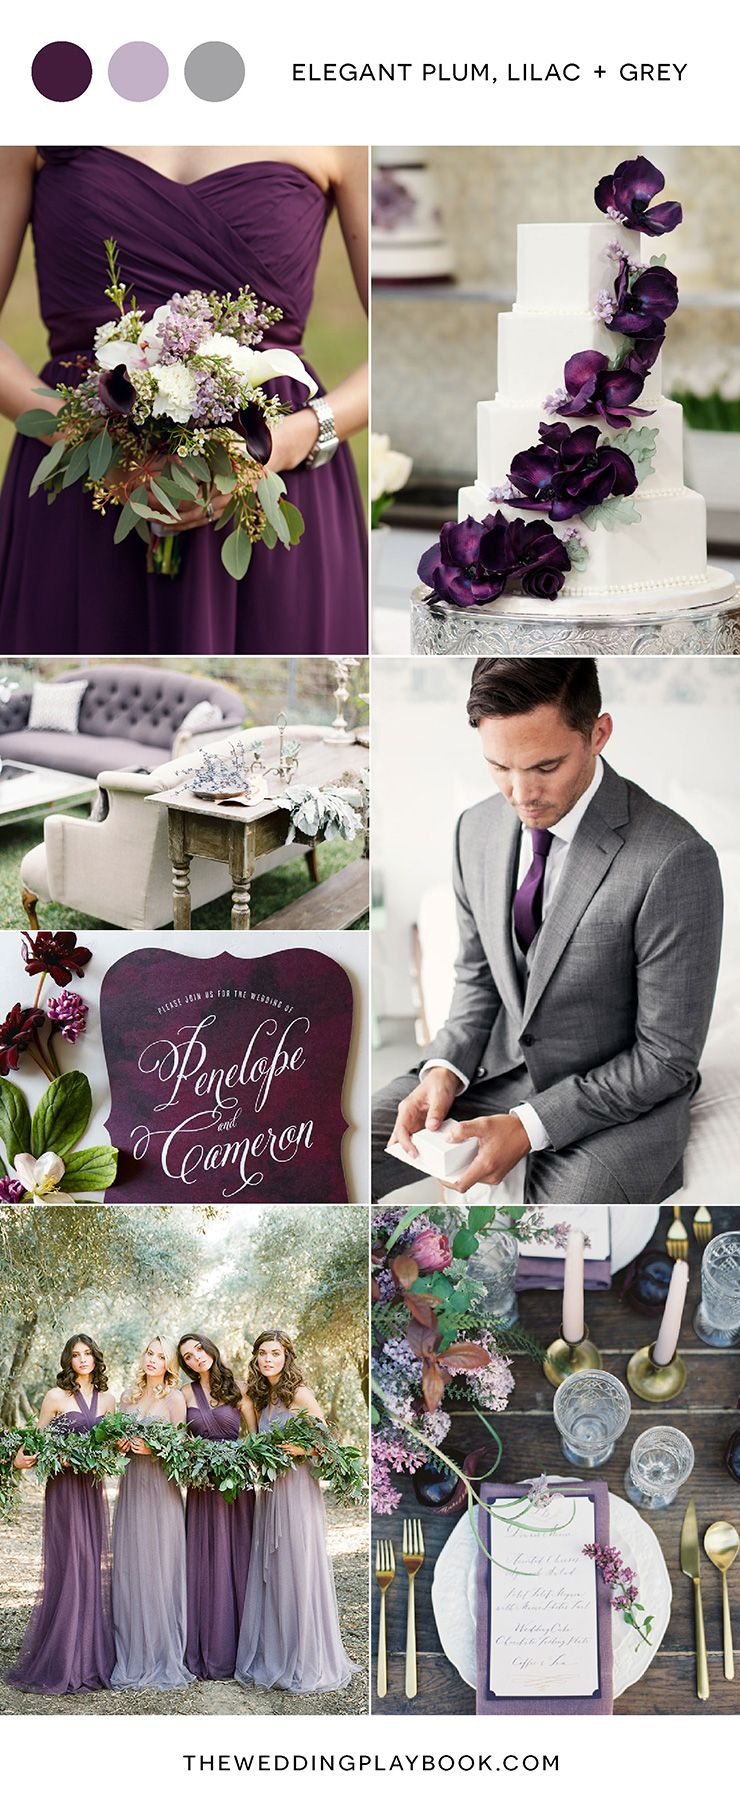 Wedding decorations styles october 2018 Plum Lilac and Grey Wedding Inspiration  Cake bouquet Color